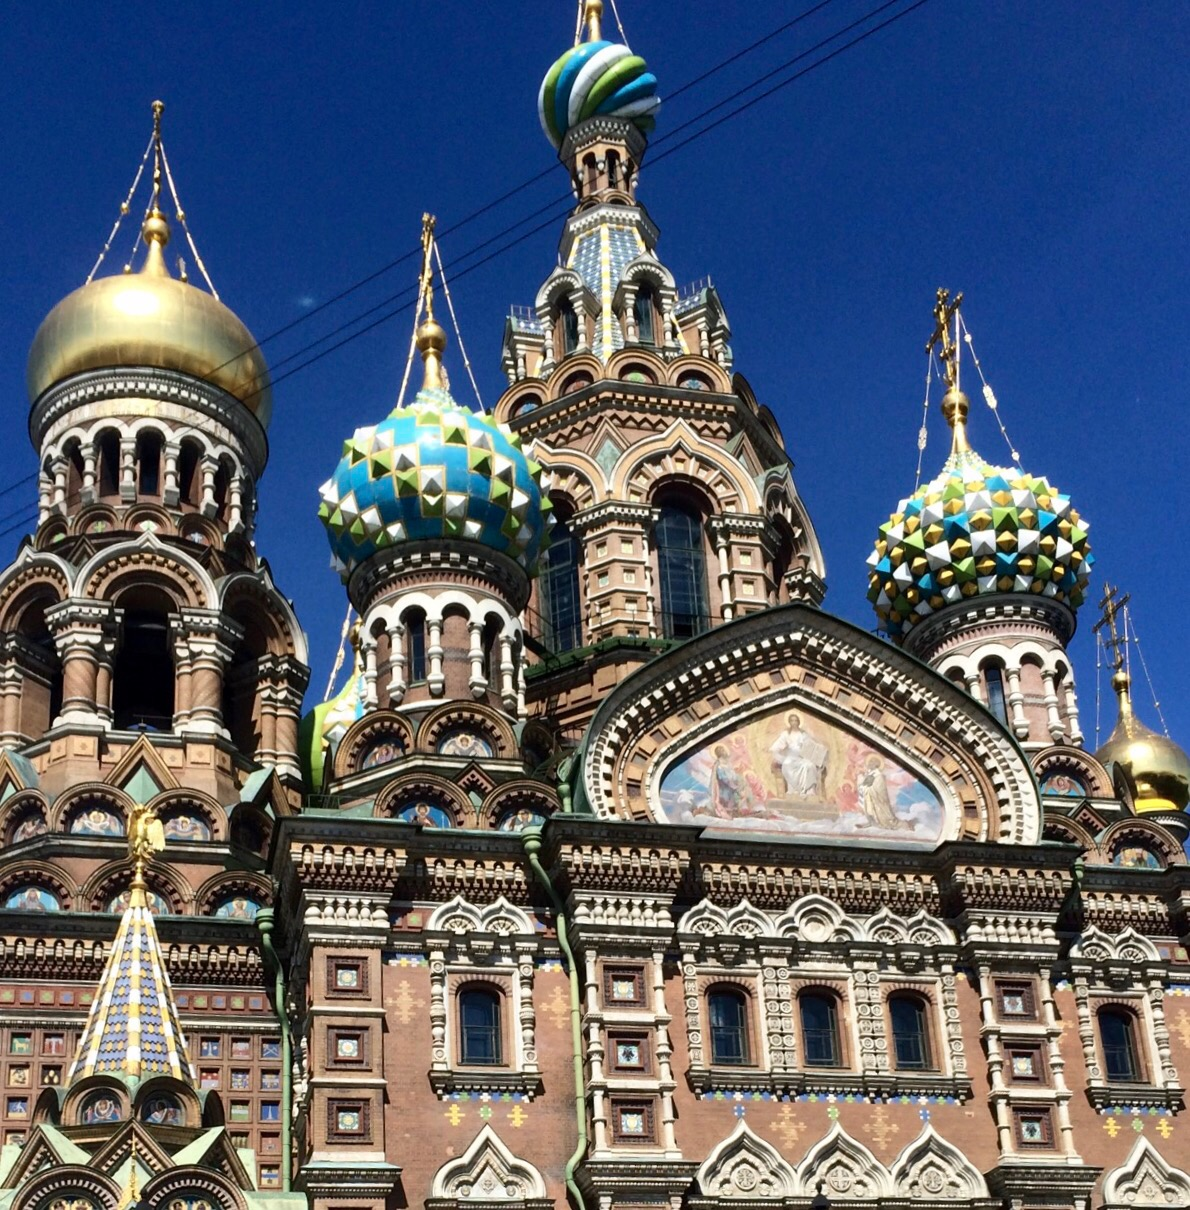 St. Petersburg -Venice of the north and amazing in size and grandeur. Breathtaking  and light throughout the night.